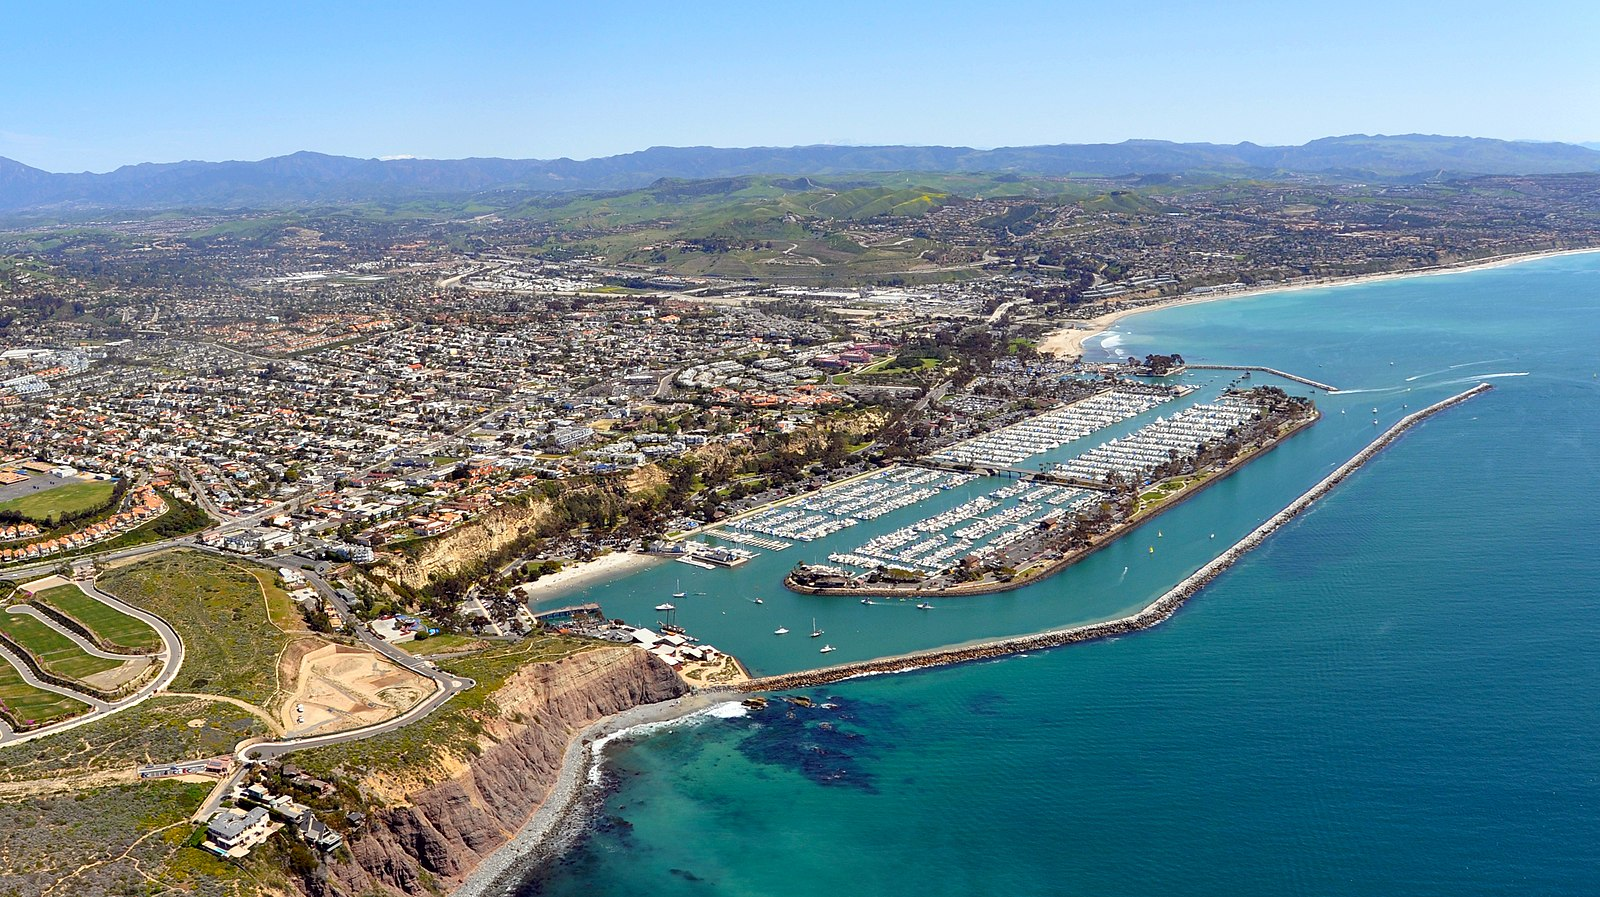 dana point Dana point overview visitors speak favorably about all that dana point has to offer, including its beaches and port you'll enjoy activities like whale watching and boating.